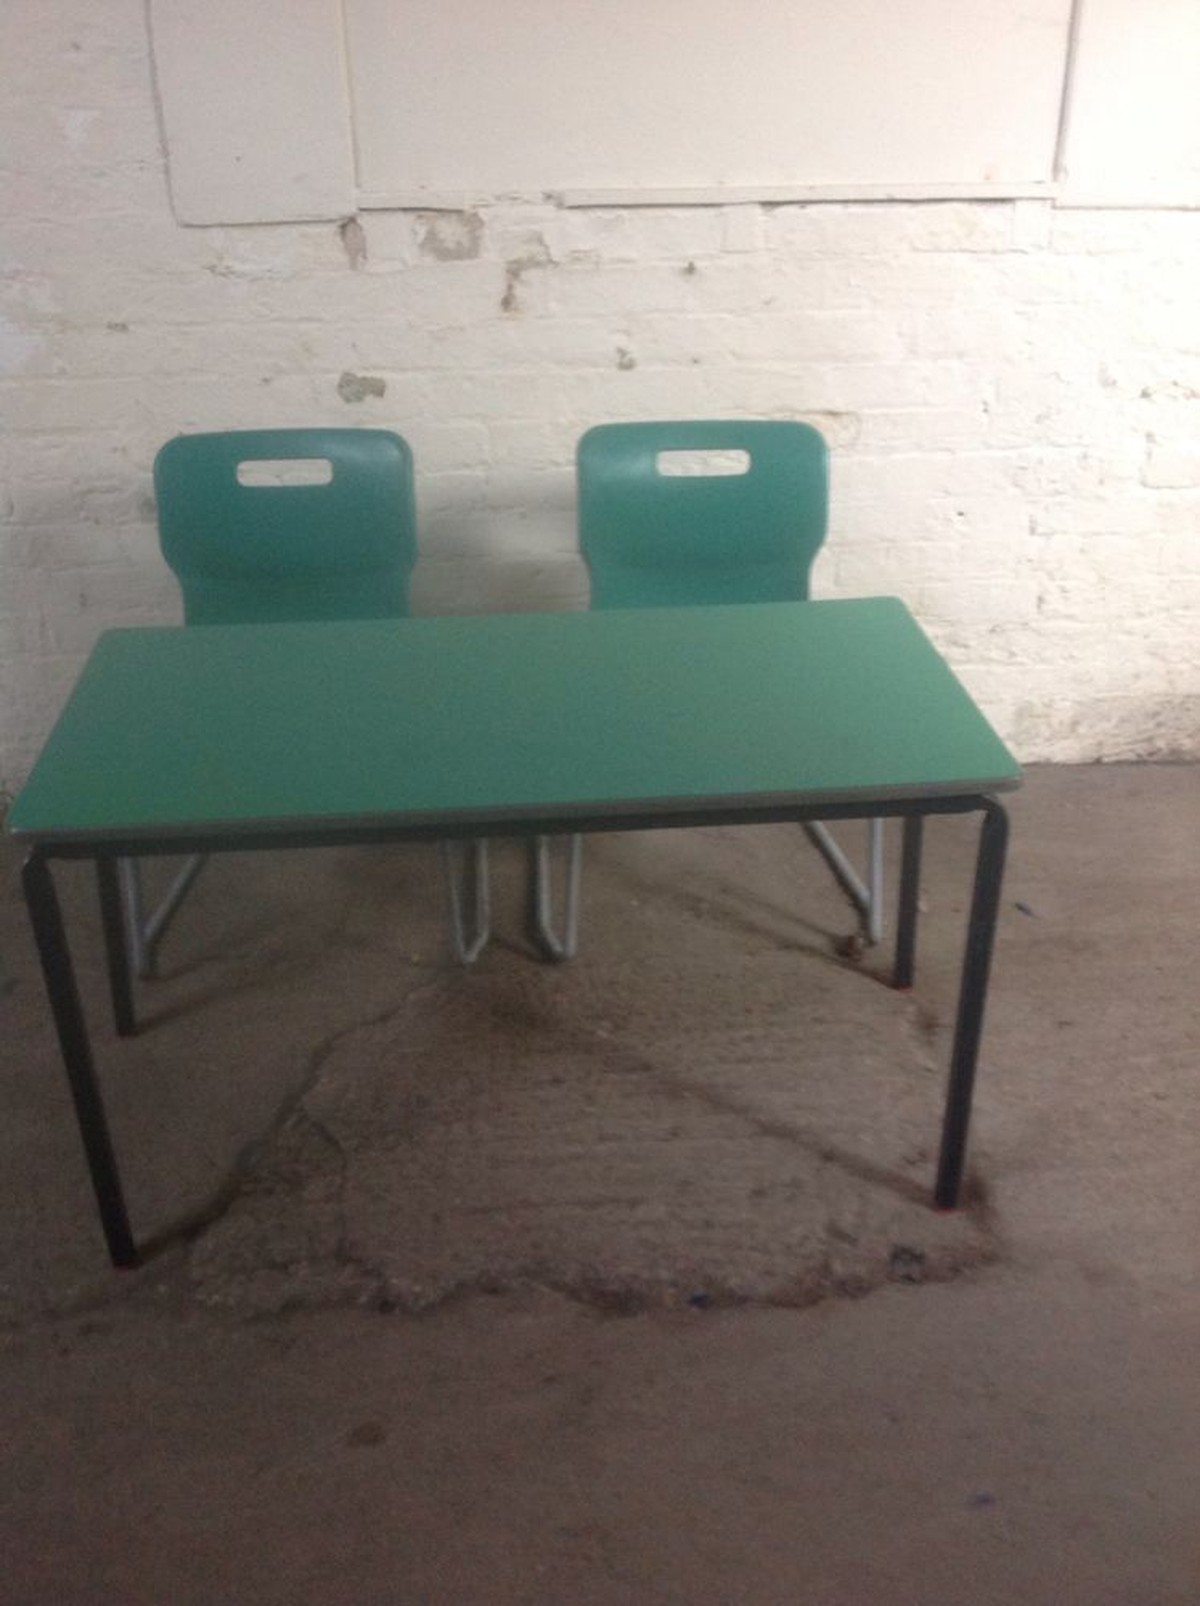 Secondhand Chairs And Tables School Playgroup And